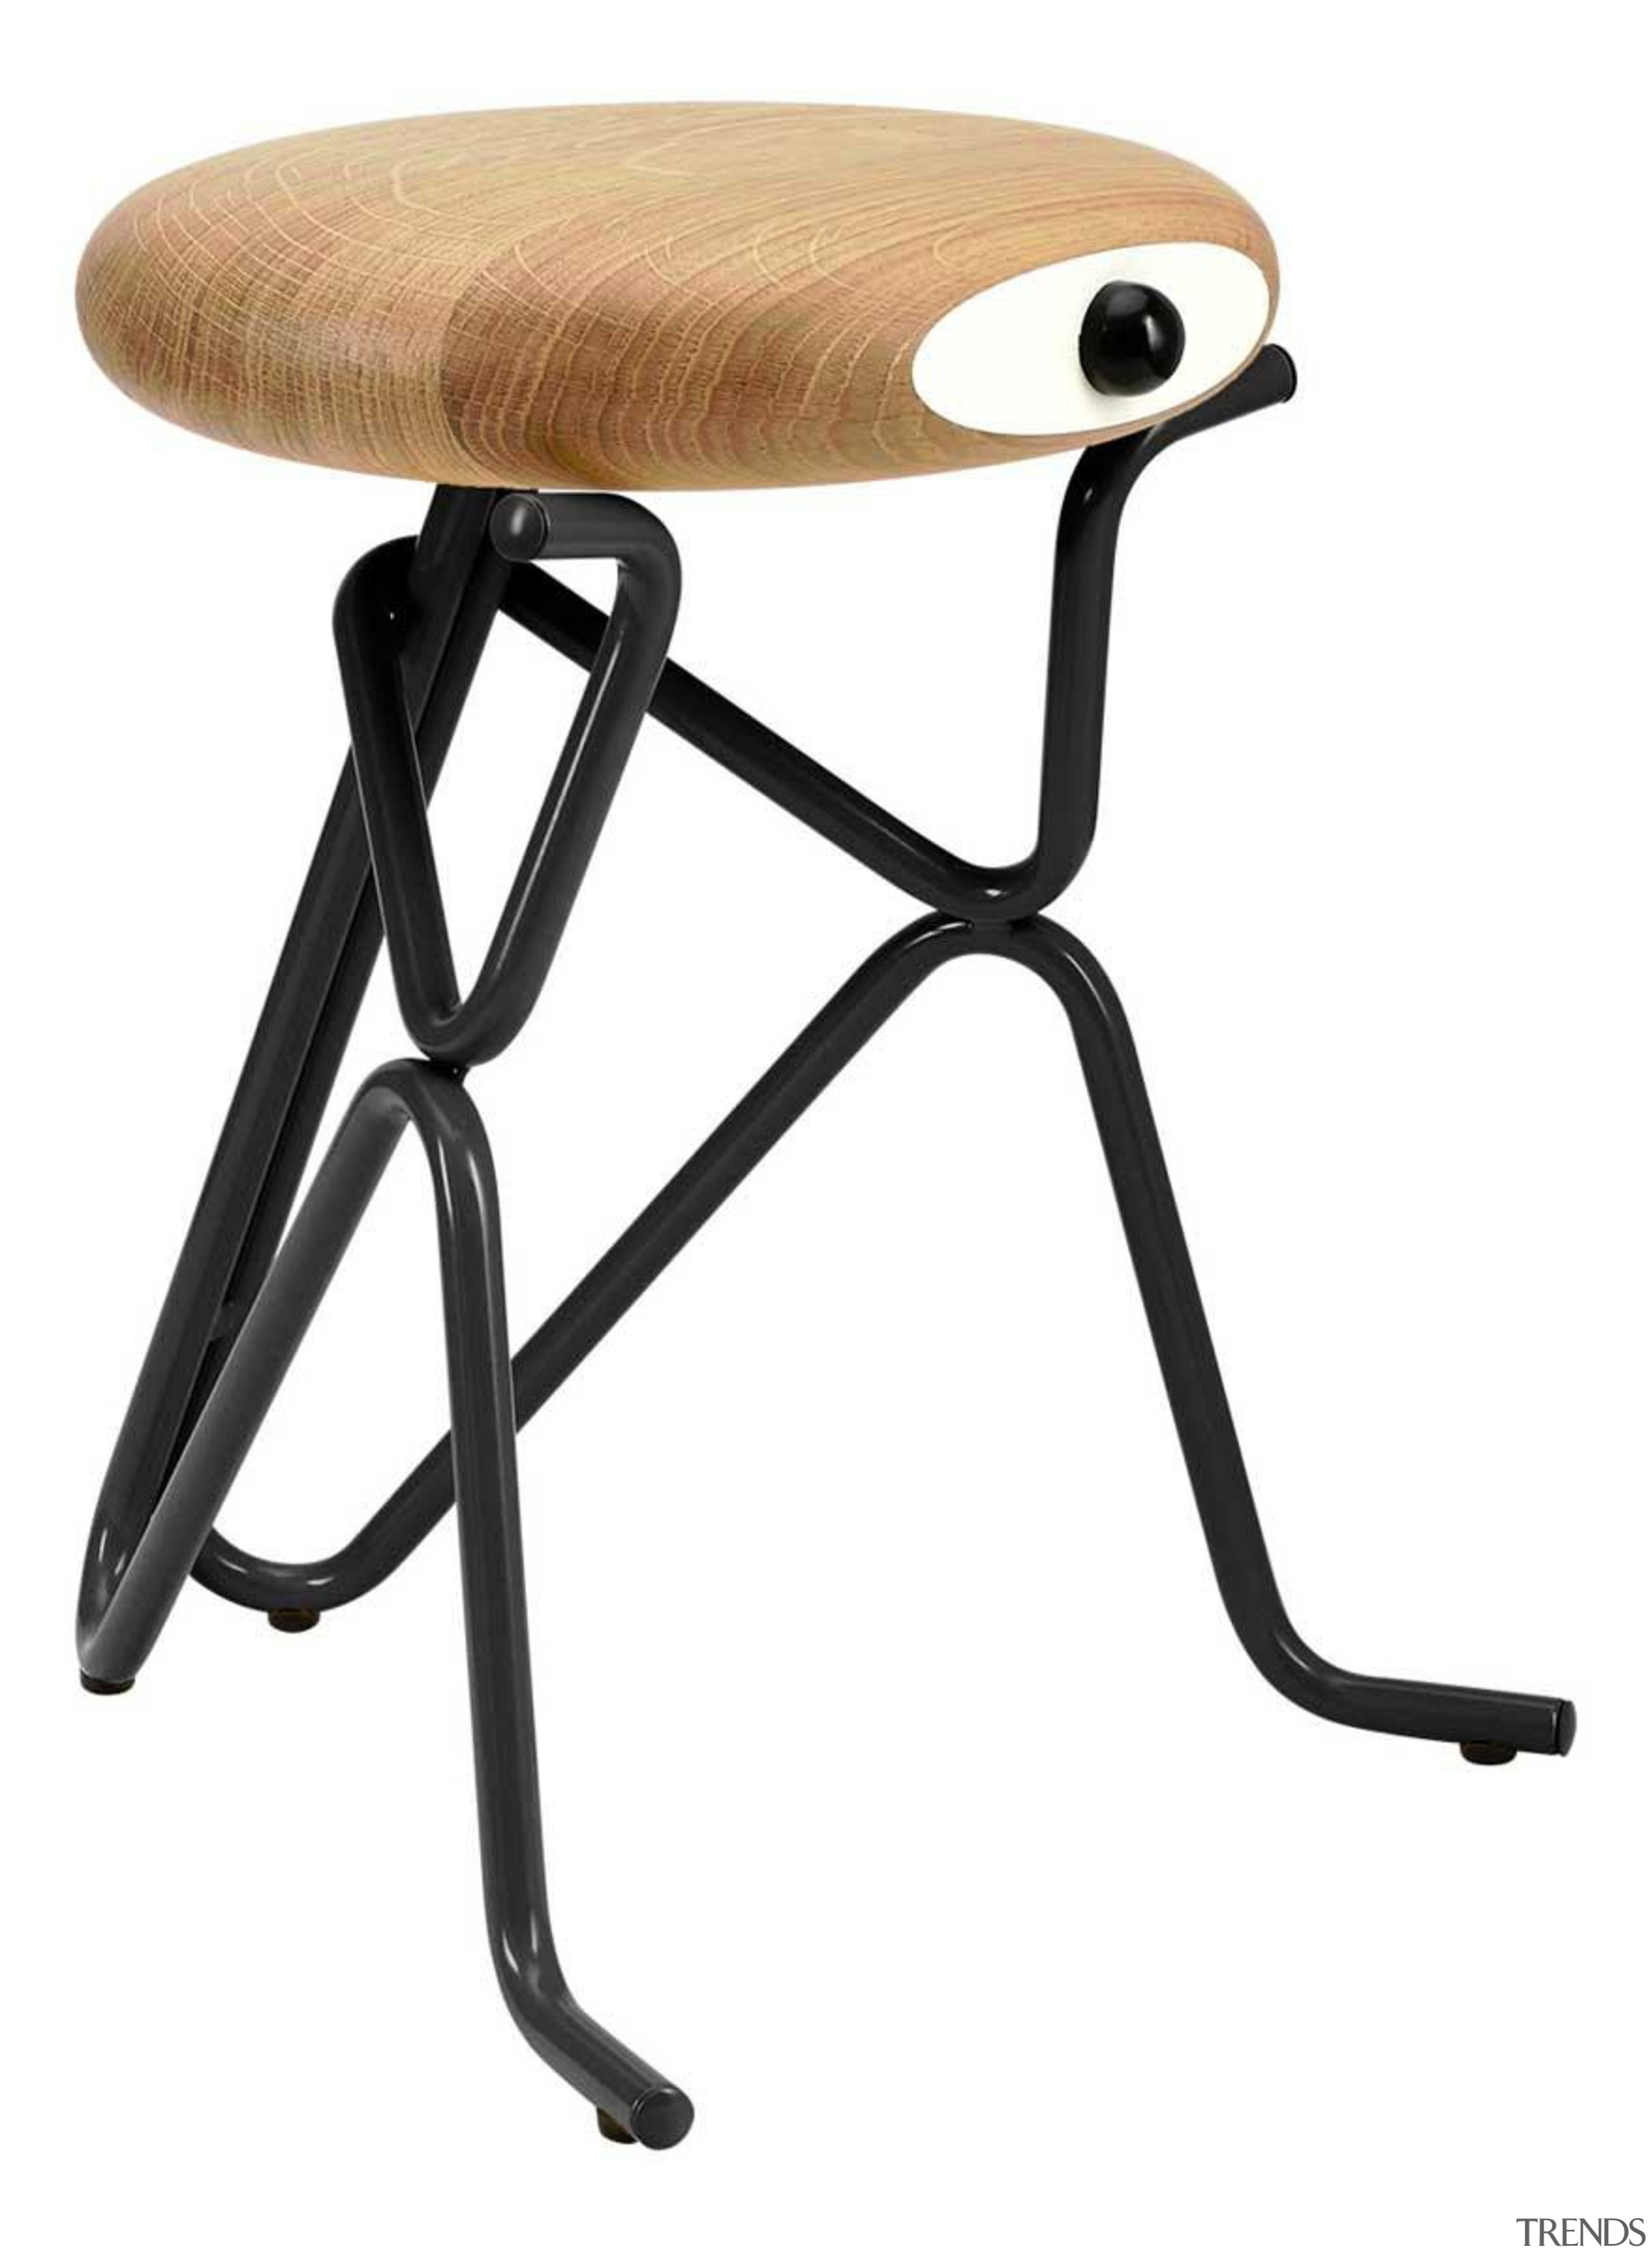 Don't be mistaken, you're not looking at characters chair, end table, furniture, outdoor table, product, product design, stool, table, white